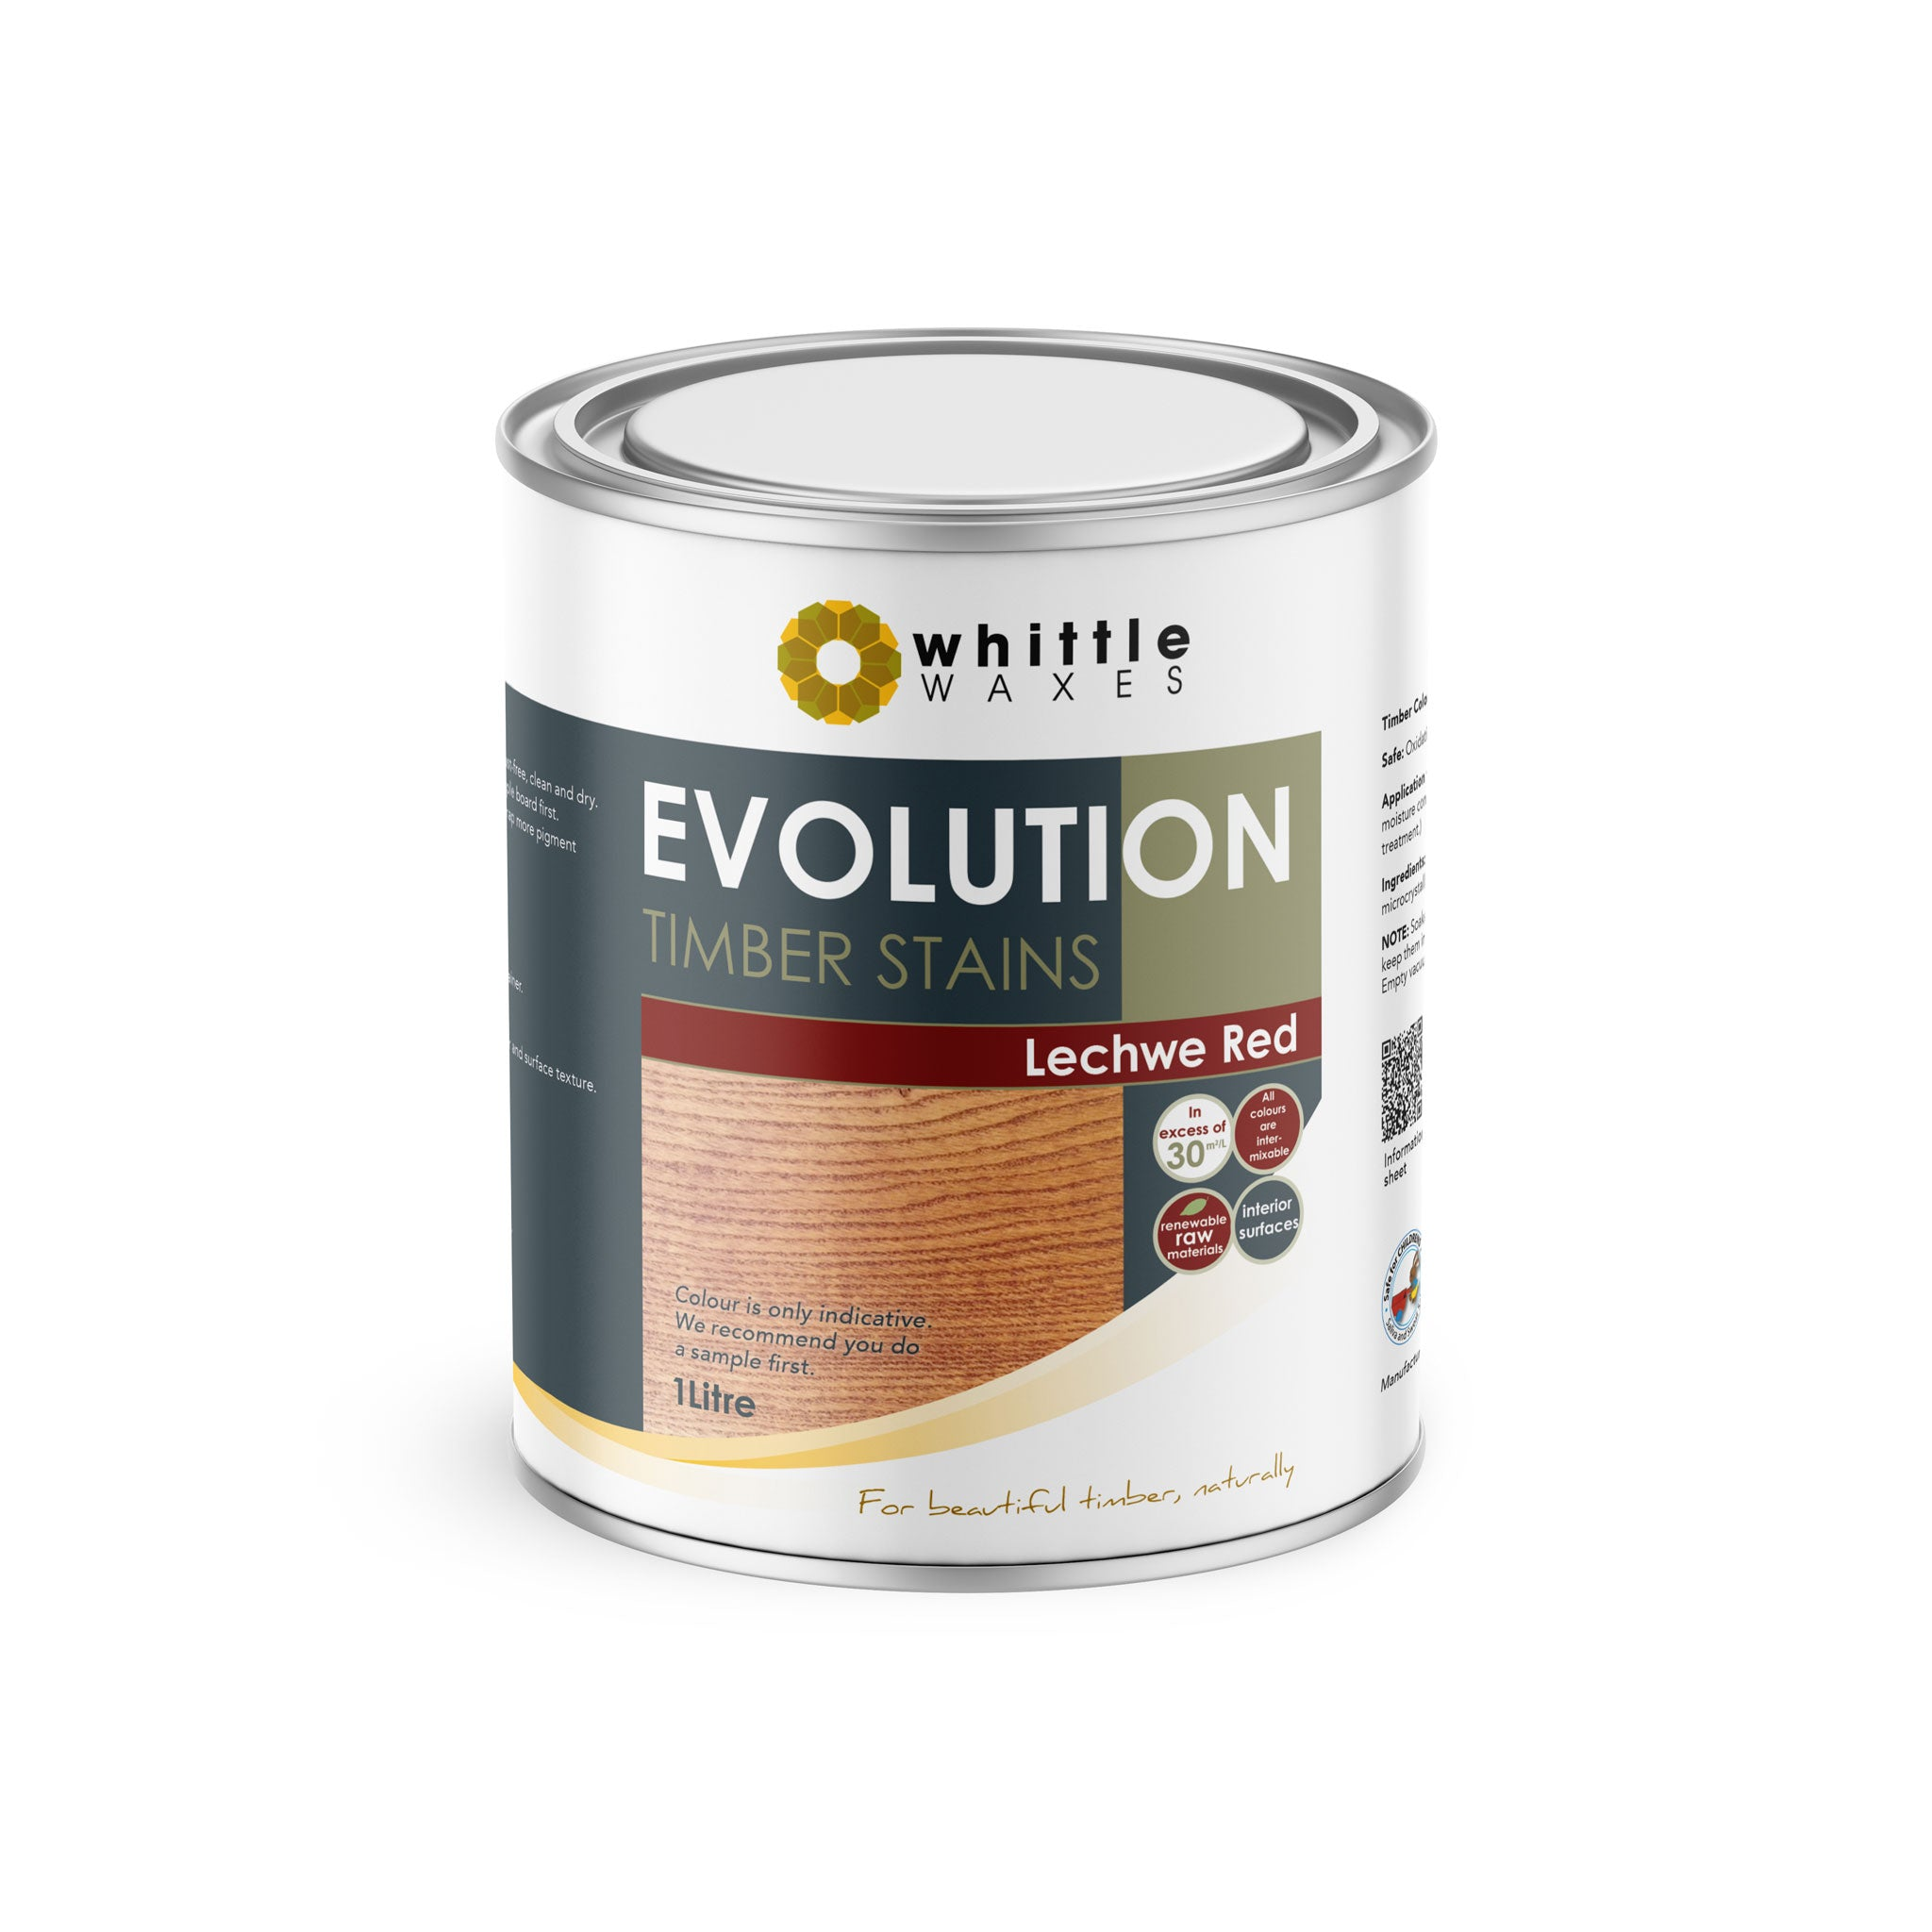 Whittle Waxes Evolution Colours (Lechwe Red) - quality timber stain - 1 Litre